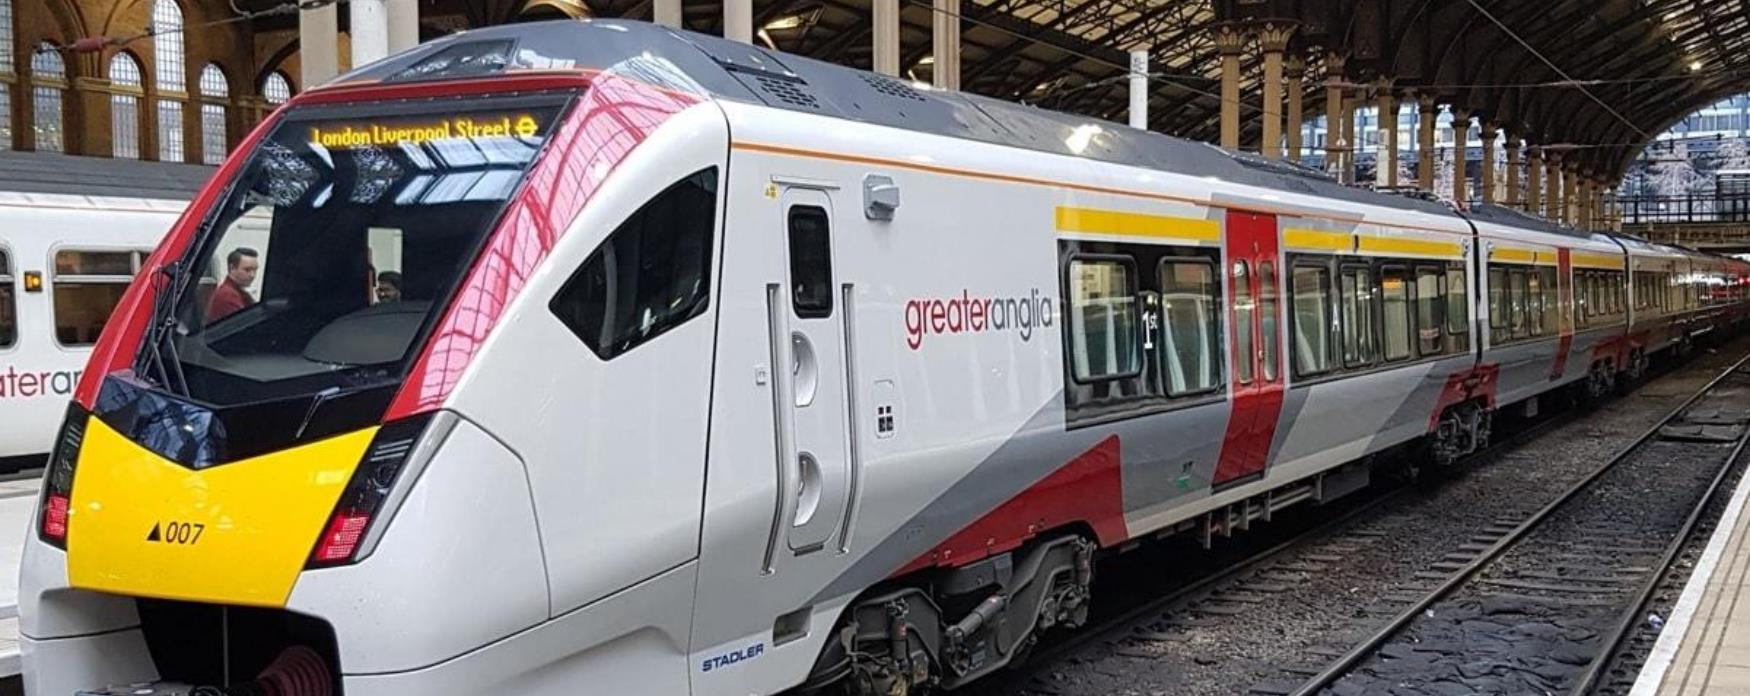 A Greater Anglia train stopped at a platform.